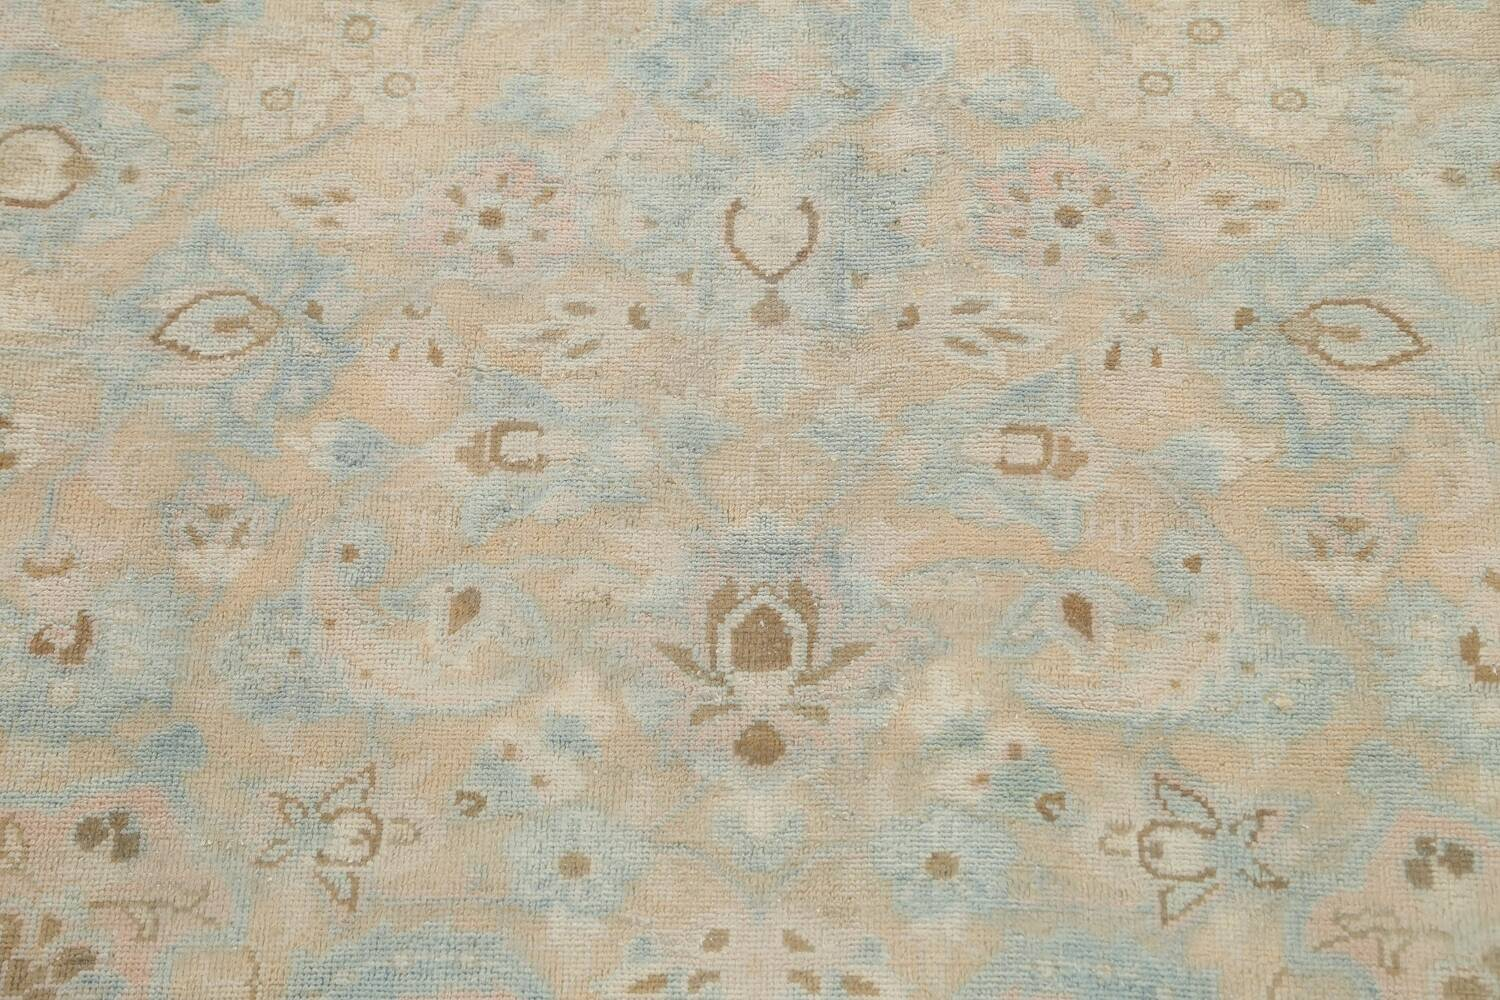 Muted Distressed Kashan Persian Area Rug 10x13 image 10